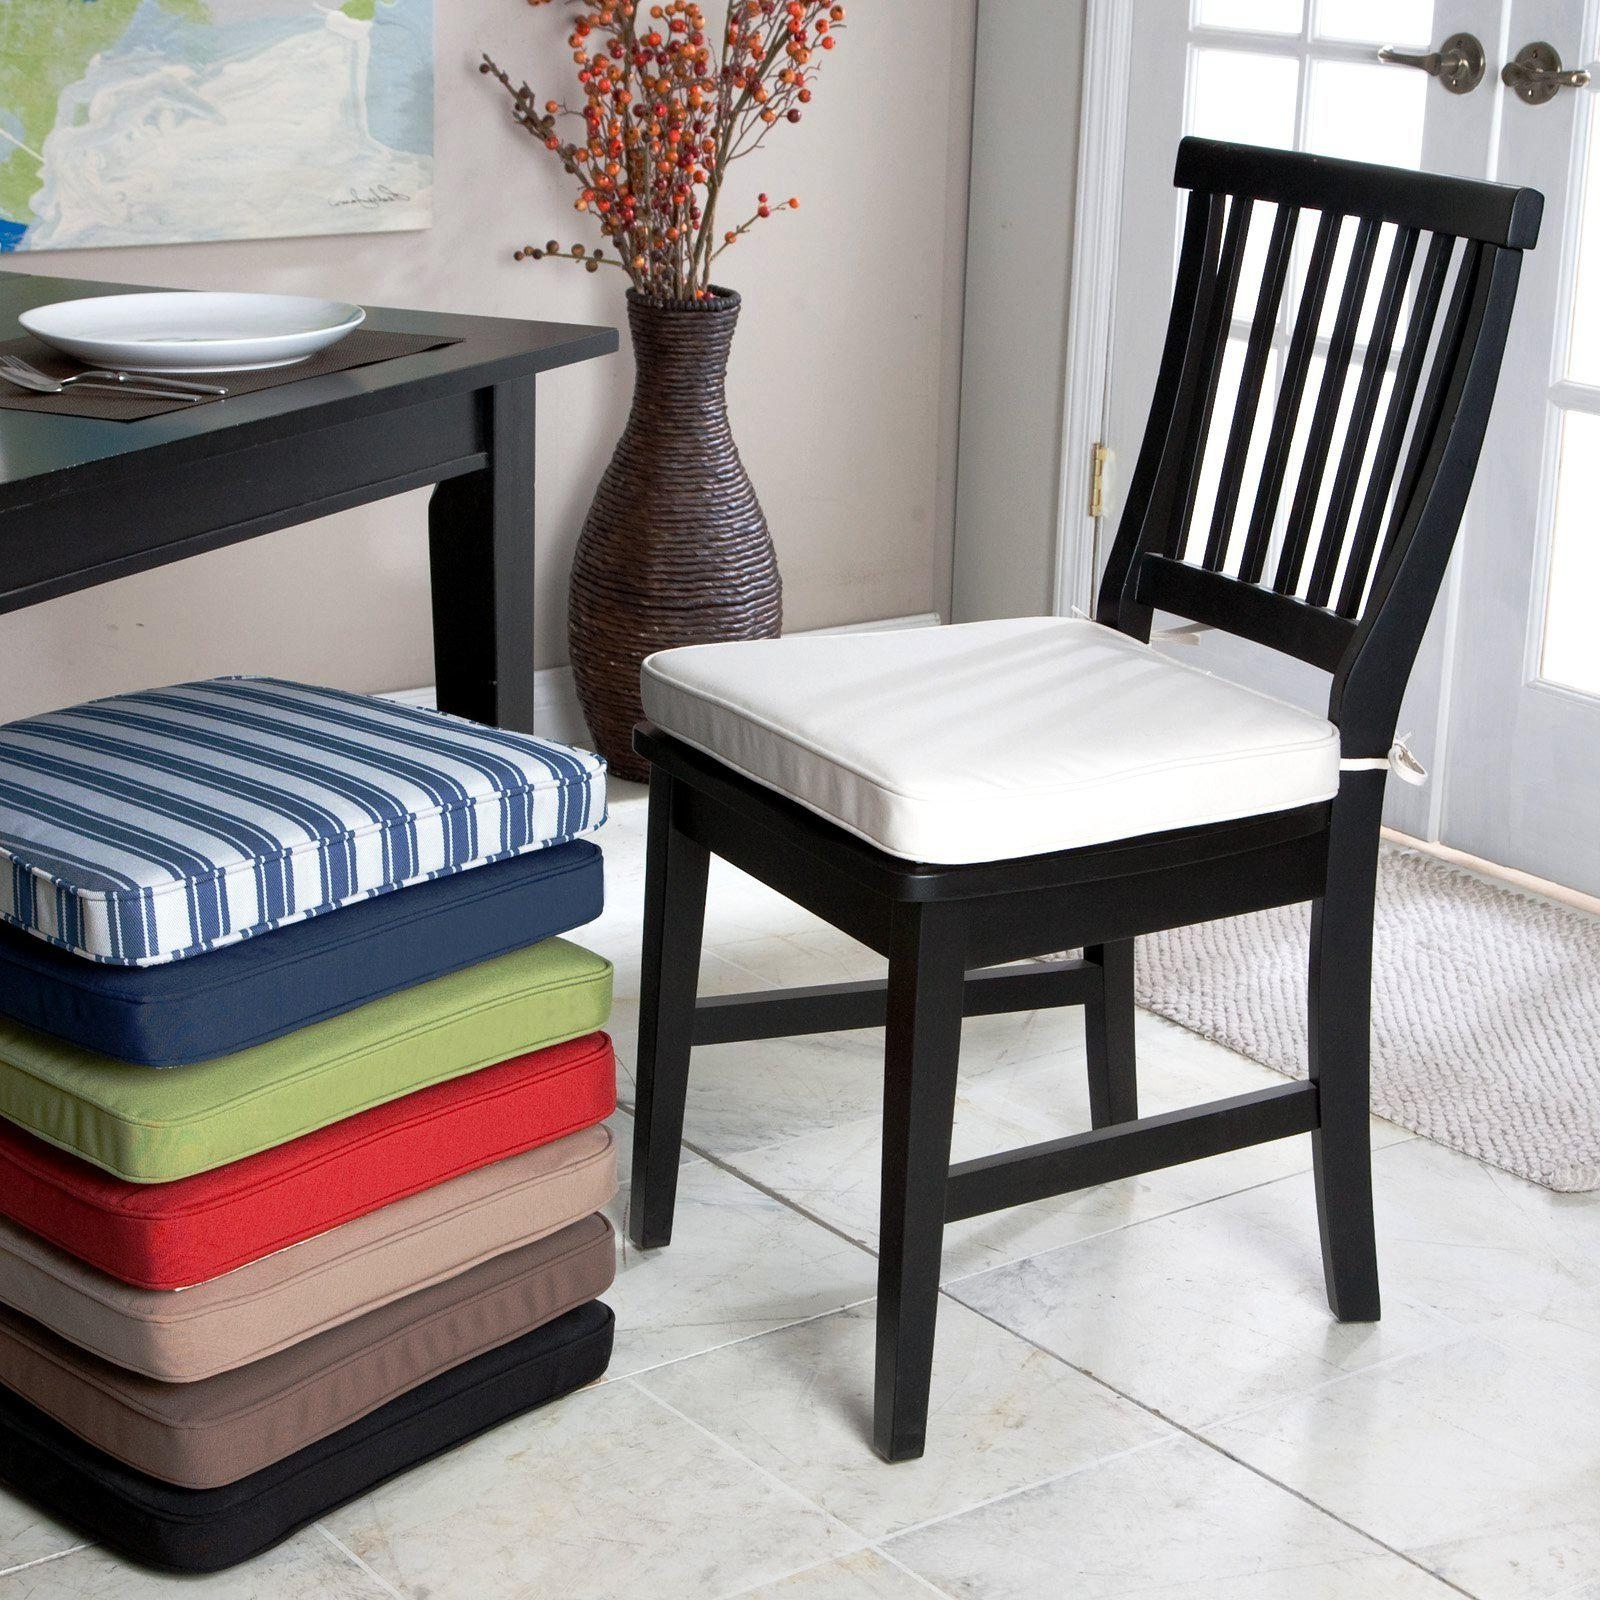 Wayfair Rocking Chair Cushions — Independent Kitchen & Bath Inside Well Known Rocking Chairs At Wayfair (View 10 of 20)